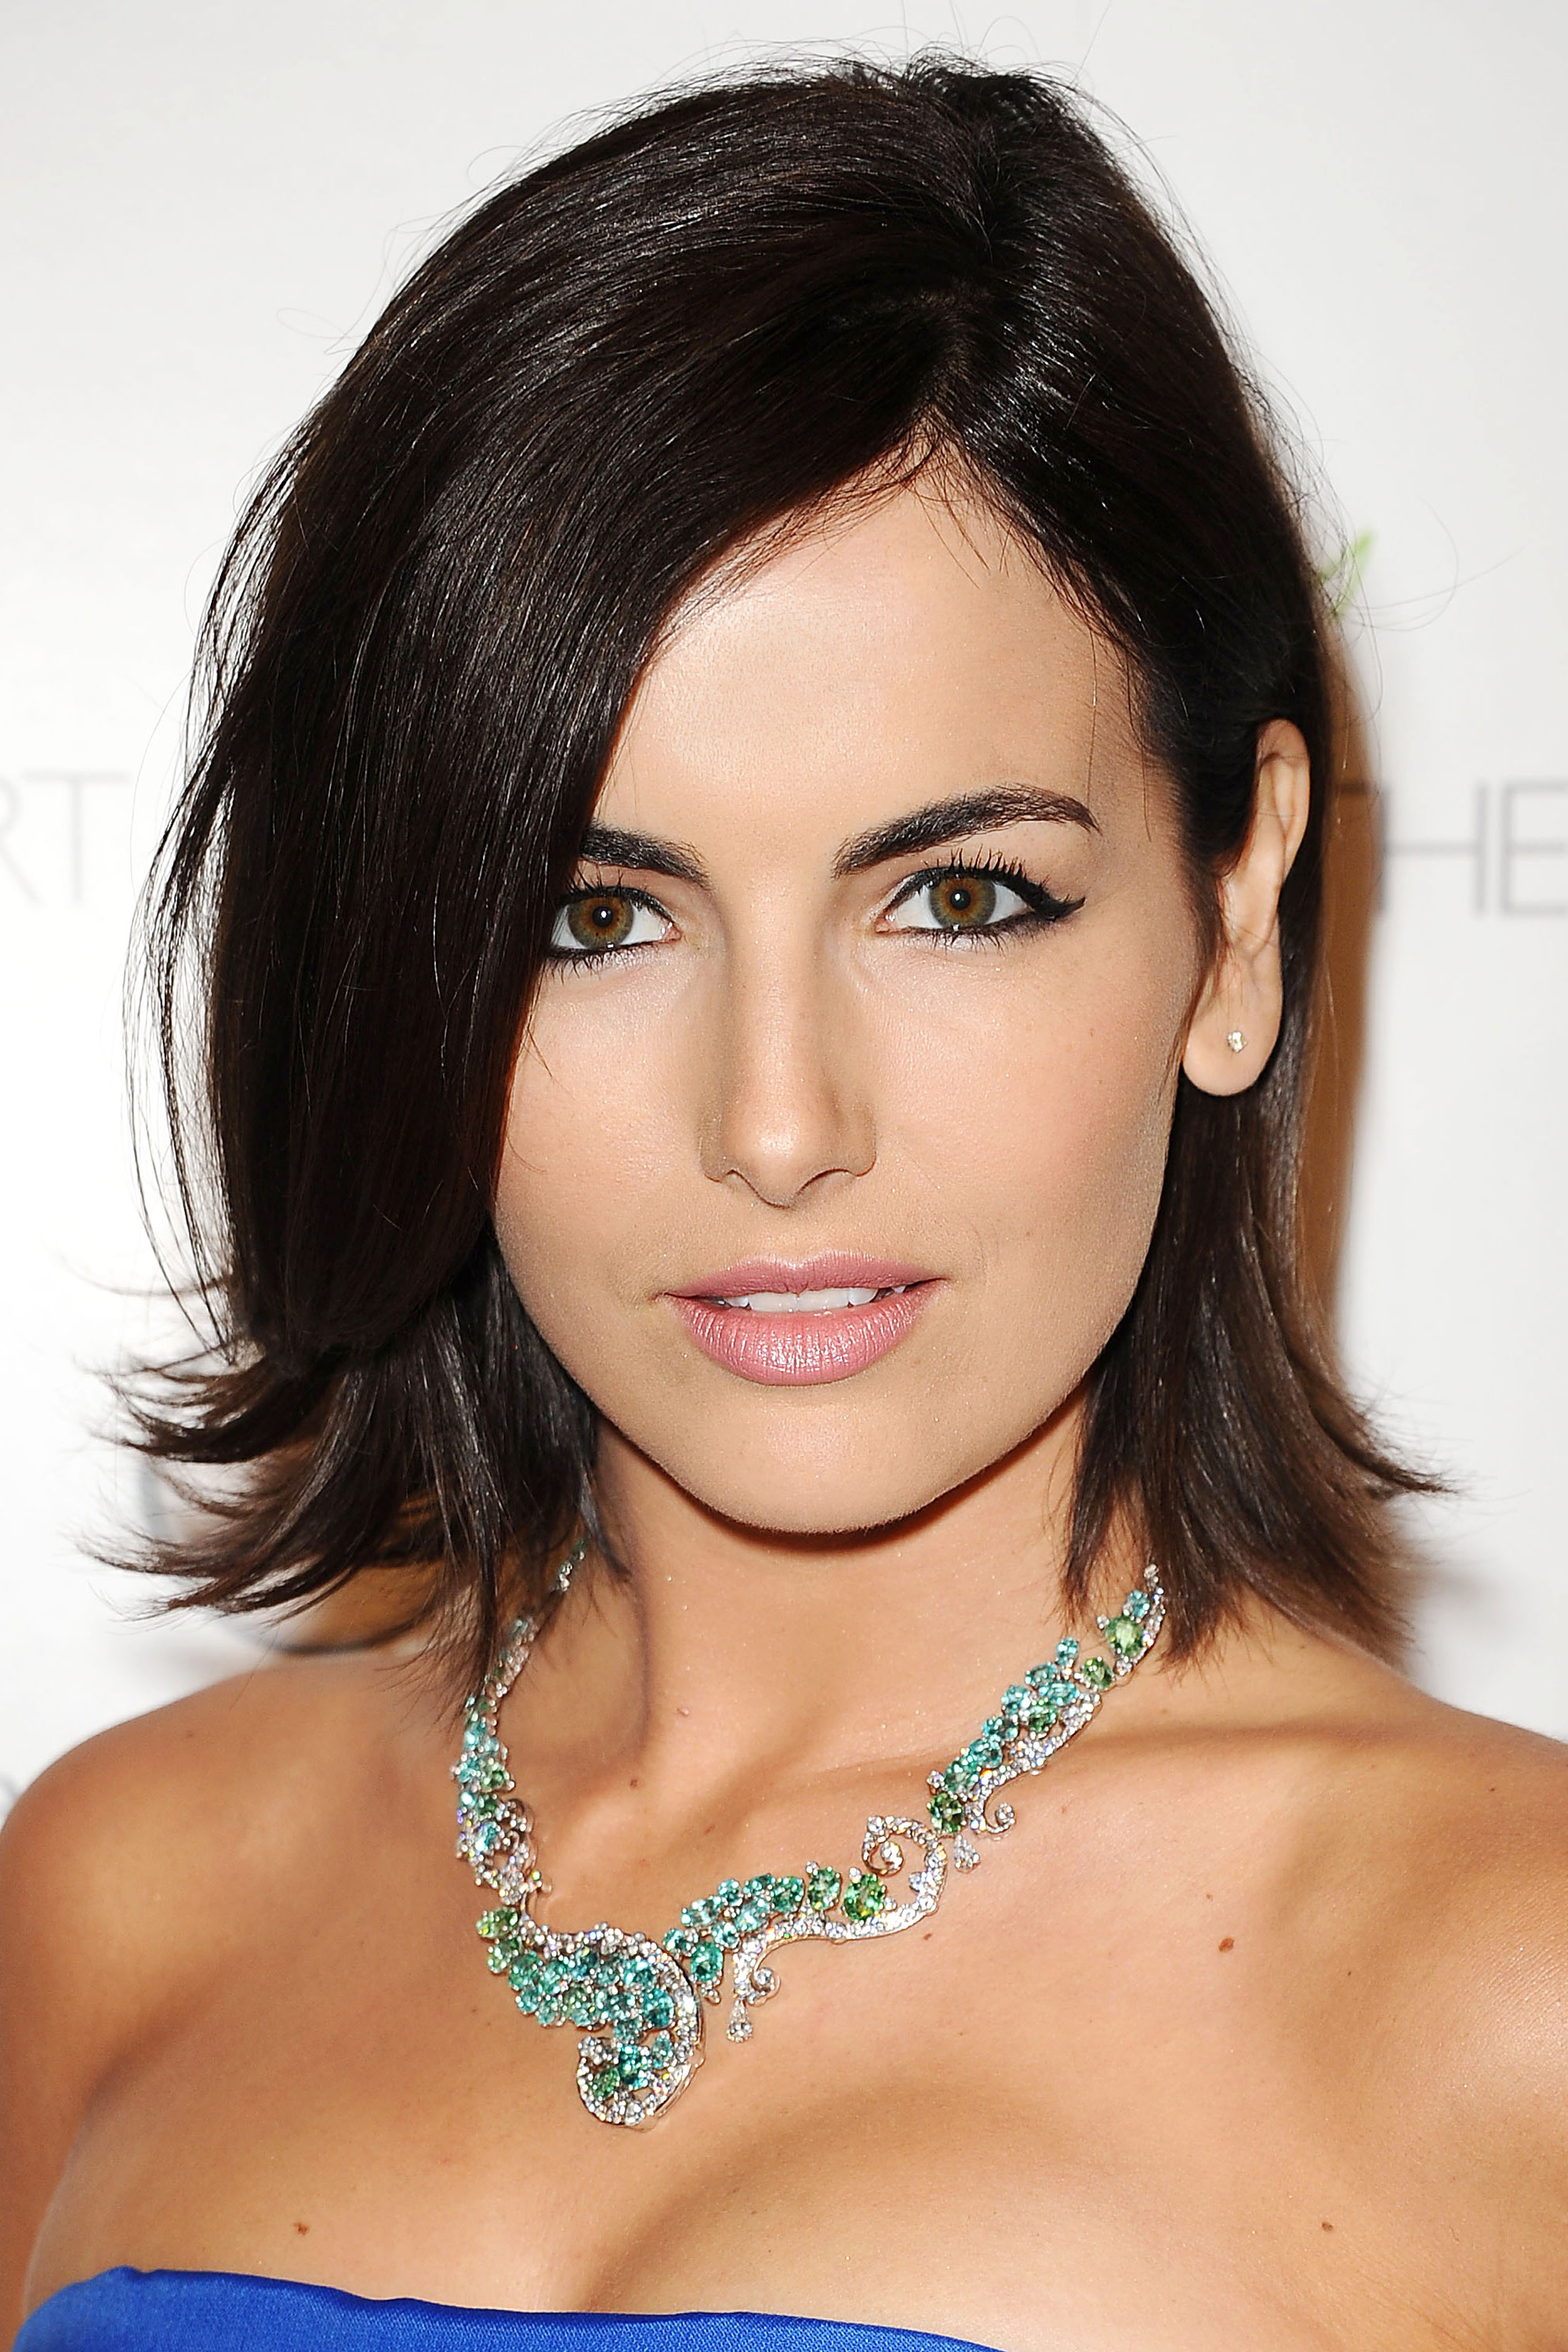 Peachy The Best Spring Hairstyles 2014 Celebrity Inspired Haircuts For Short Hairstyles For Black Women Fulllsitofus